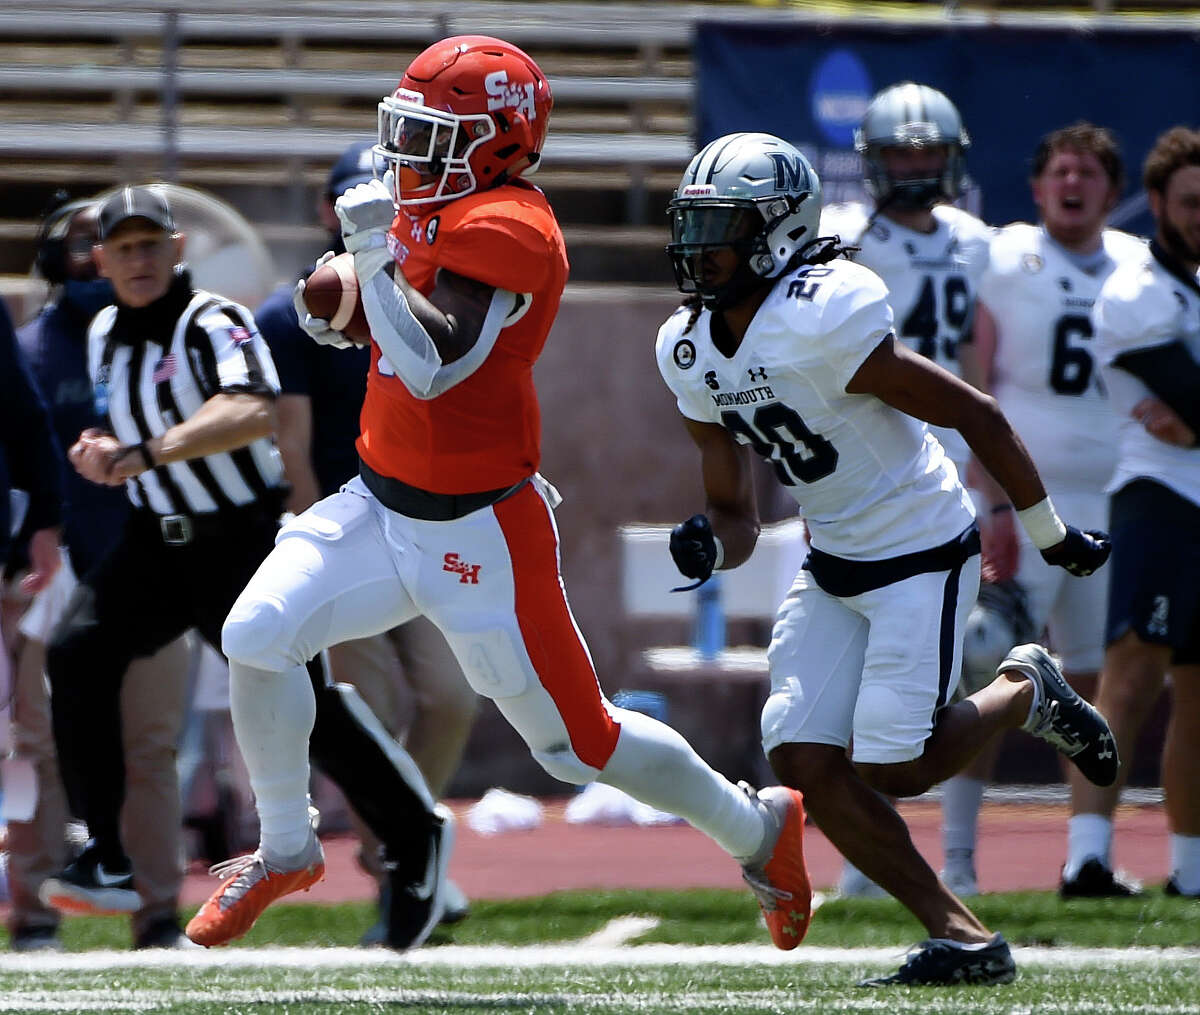 Sam Houston State running back Ramon Jefferson, left, runs past Monmouth defensive back Justin Terry (20) for a touchdown during the first half of a first round FCS college football playoff game, Saturday, April 24, 2021, in Huntsville, TX.